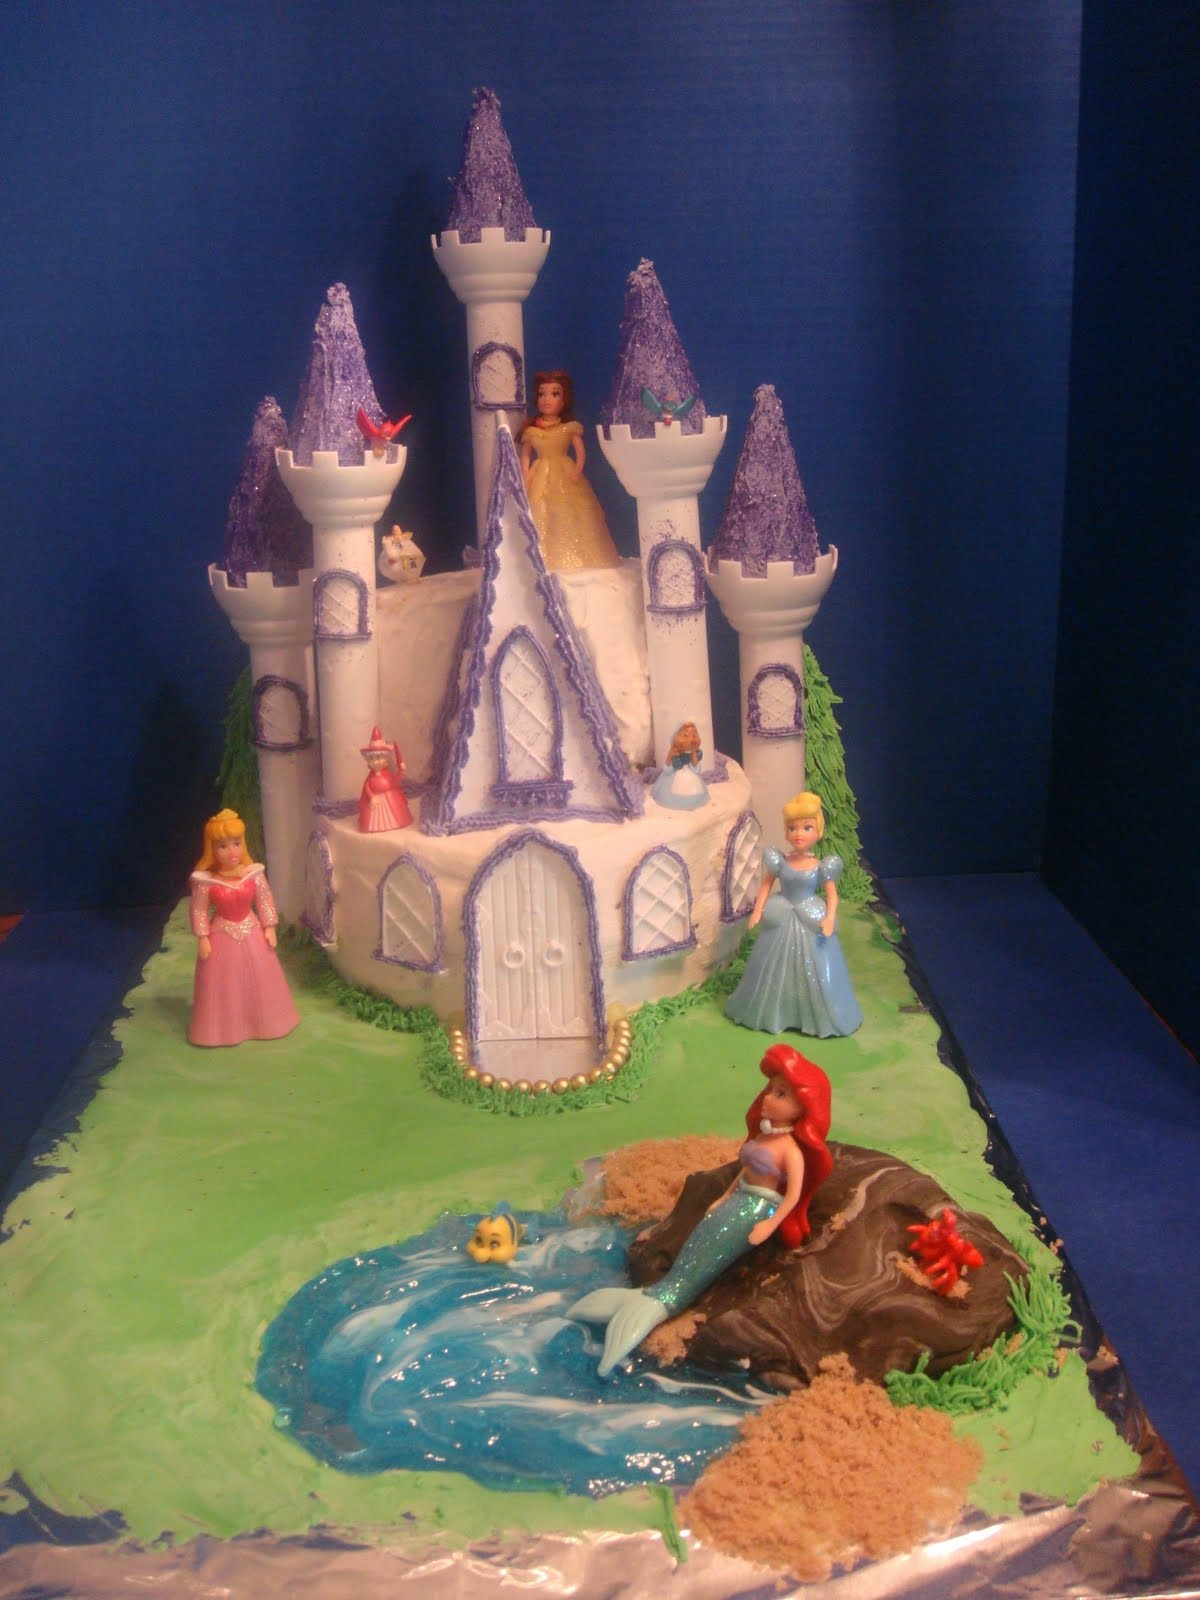 Cakes By LAM Designs Disney Princess Castle Cake